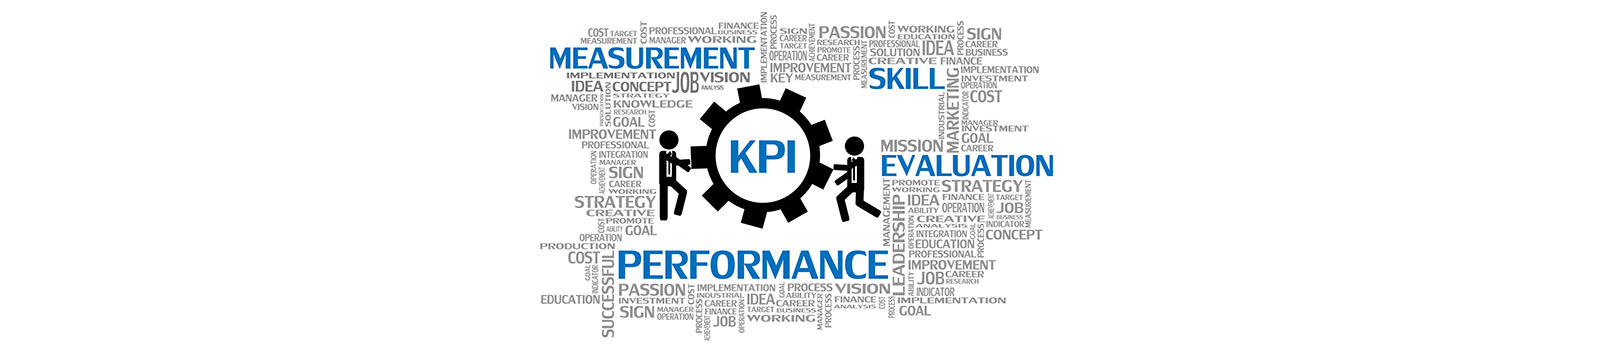 Vector of Key Performance Indicator or KPI, Business Concept